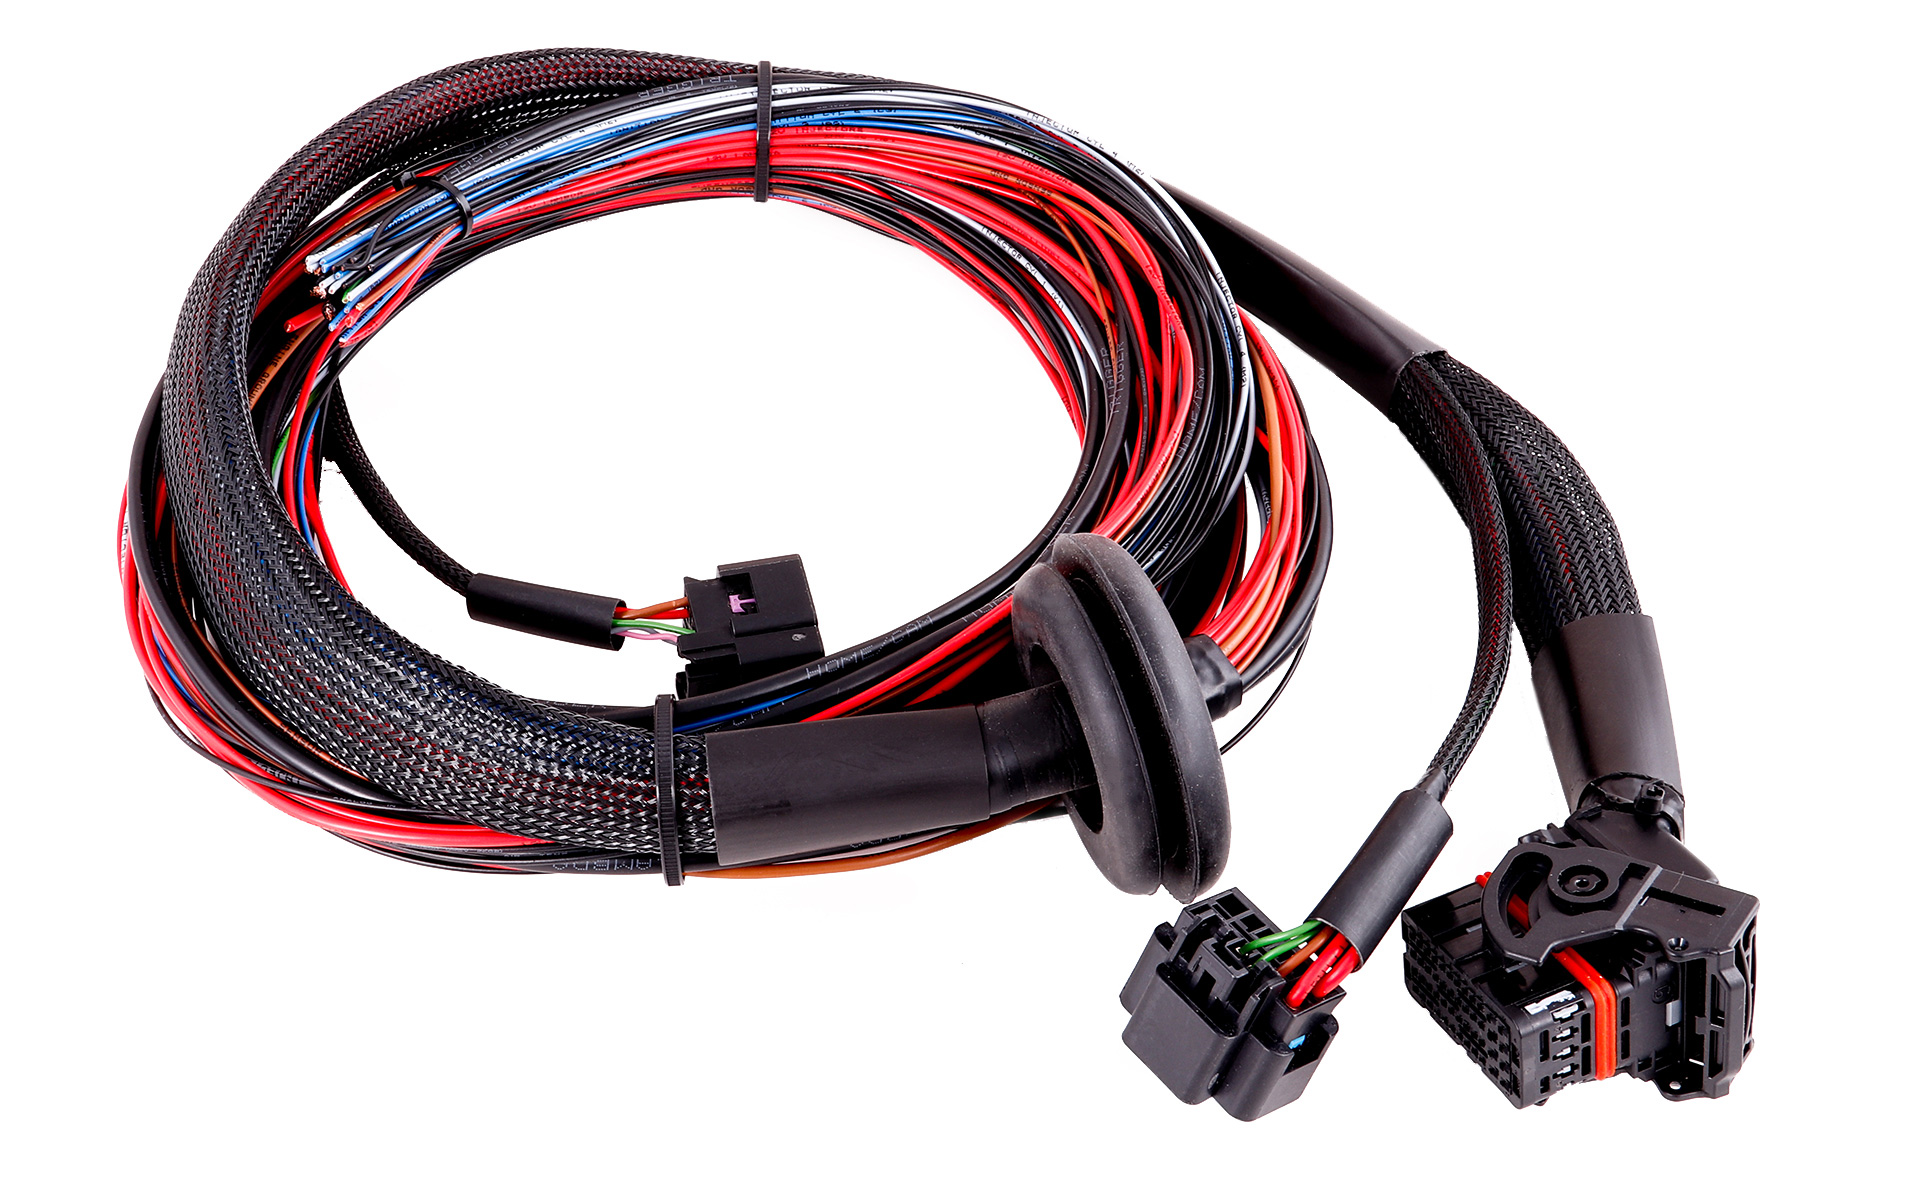 Maxxecu Sport Engine Management Subaru Ej20 Wiring Diagram All Consists Of High Quality Thin Walled Cable Cables Are Labeled With Their Functions We Have Done Everything For A Stress Free